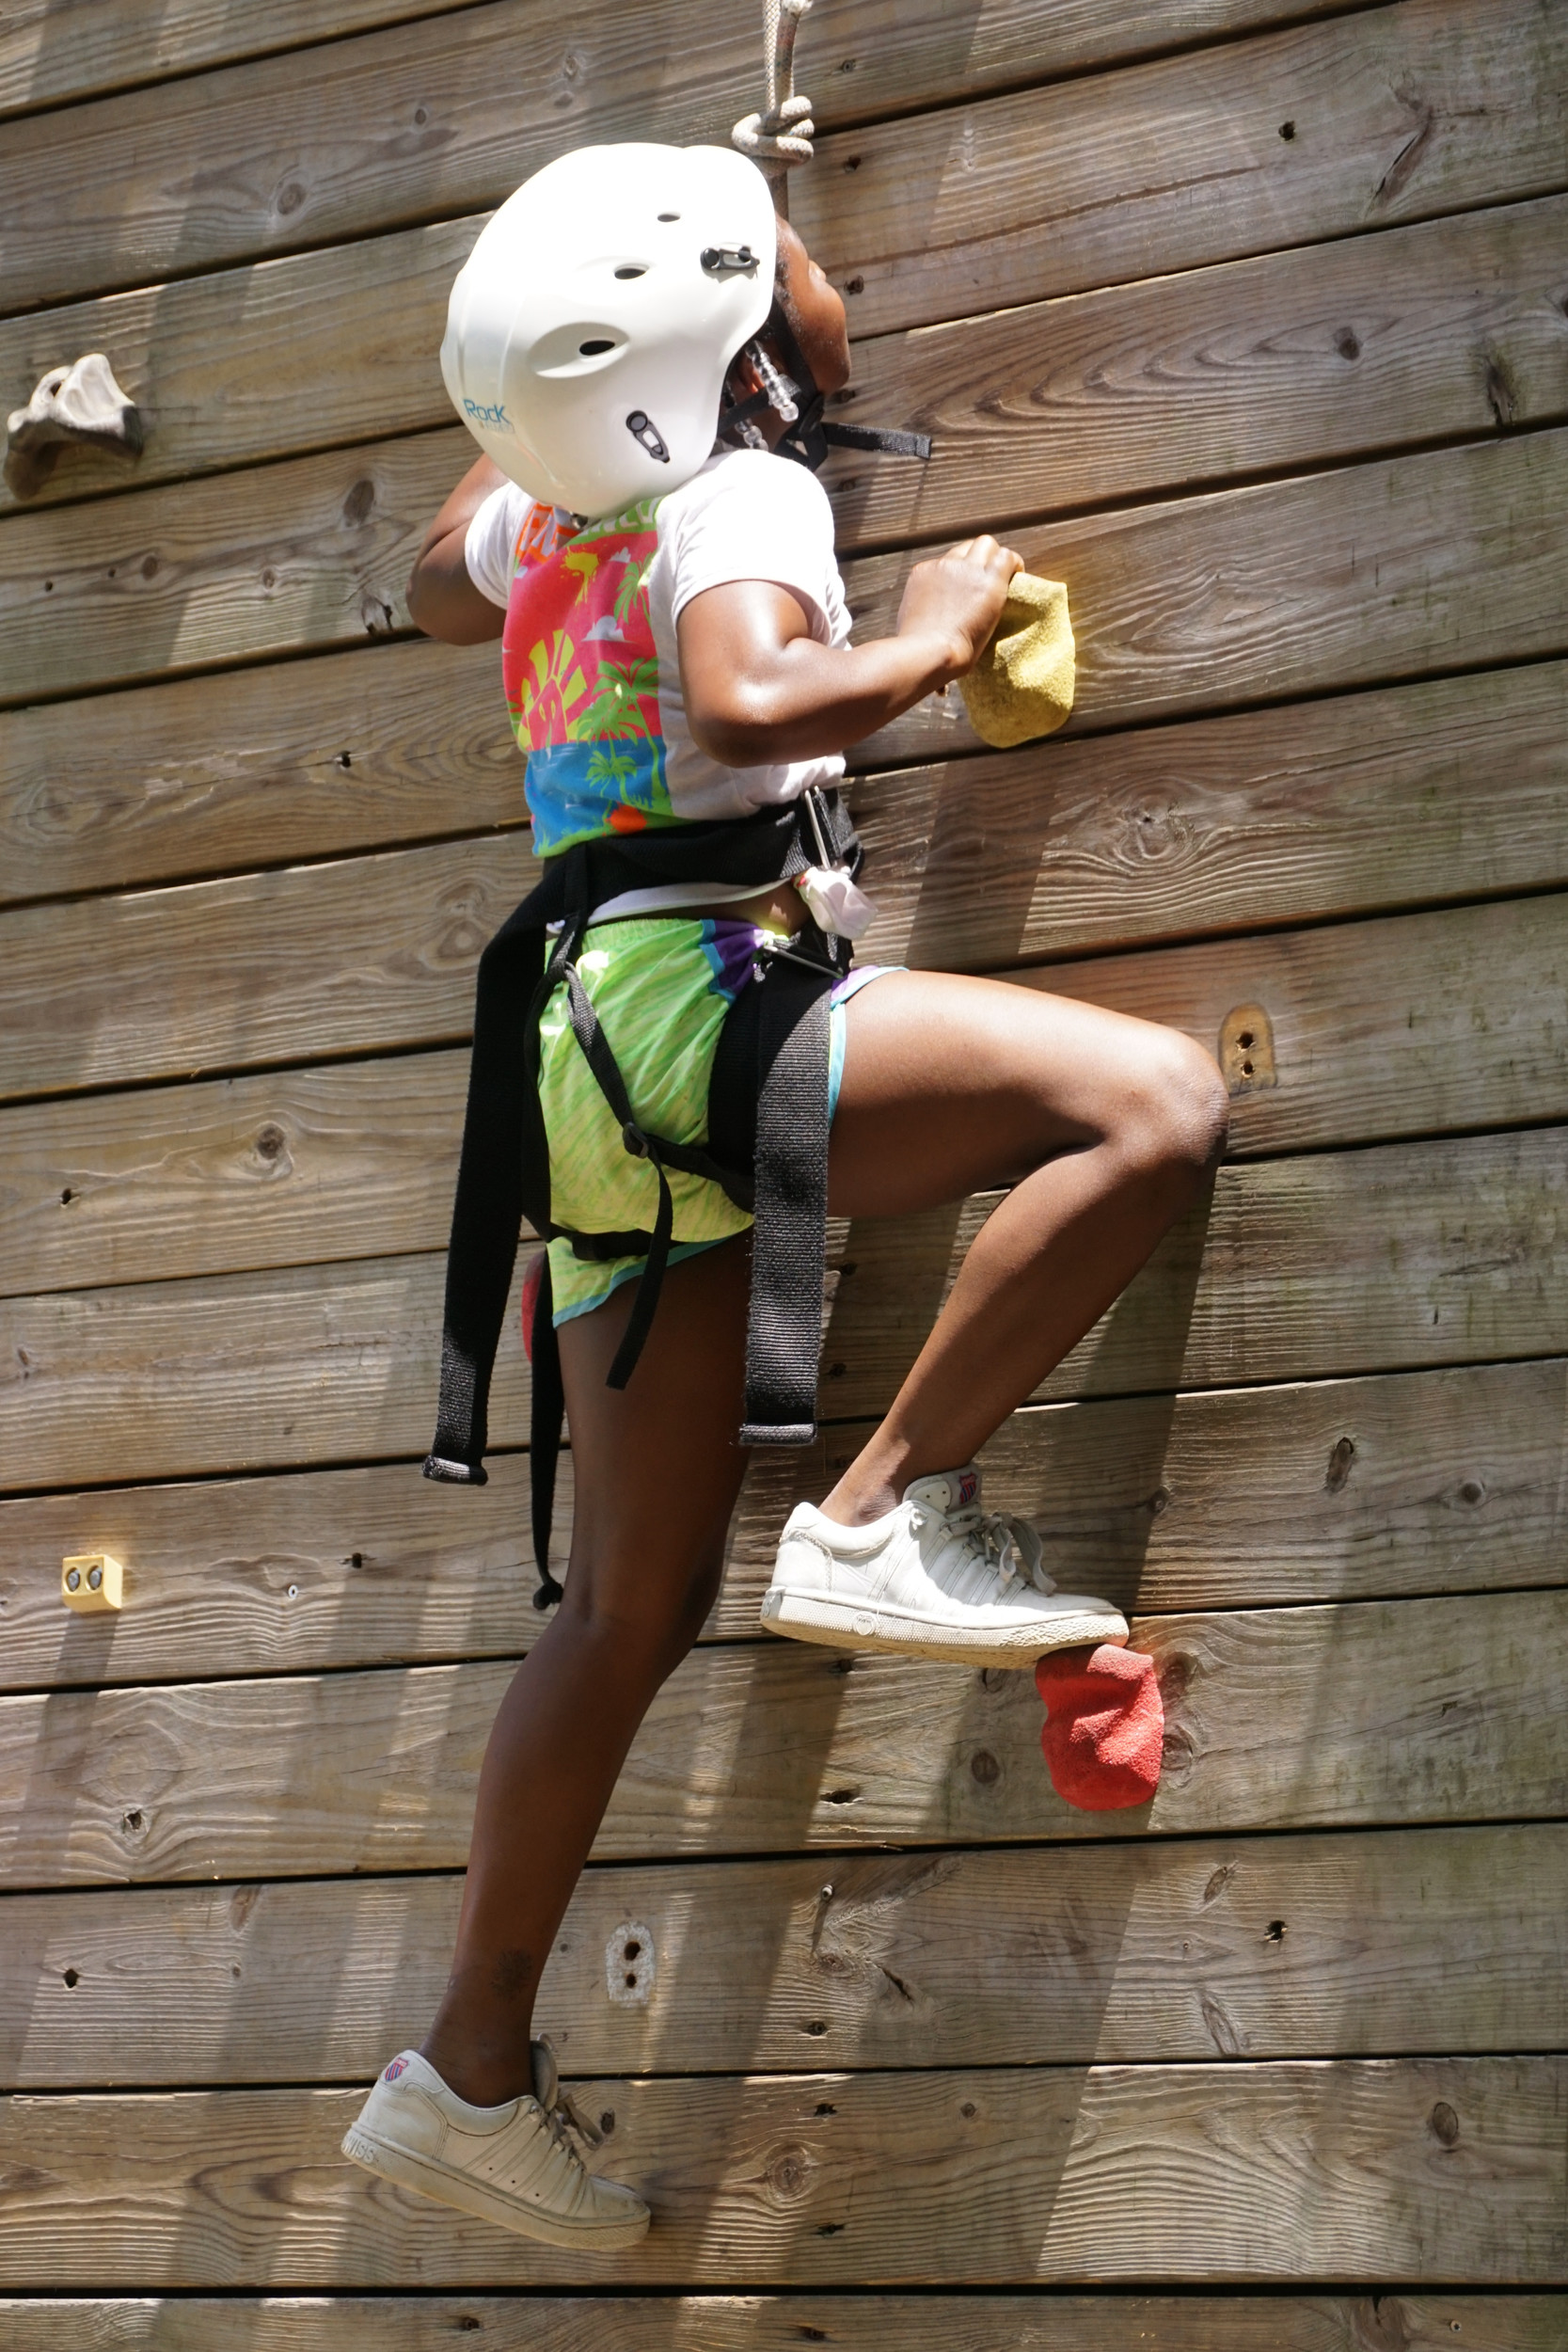 A camper scales the climbing wall at Camp Bob Cooper Wednesday at Camp Happy Days. The climbing wall offers the campers a chance to do something they have never done before and get encouragement from their peers, said Camp Happy Days Executive Director Cindy Johnson.